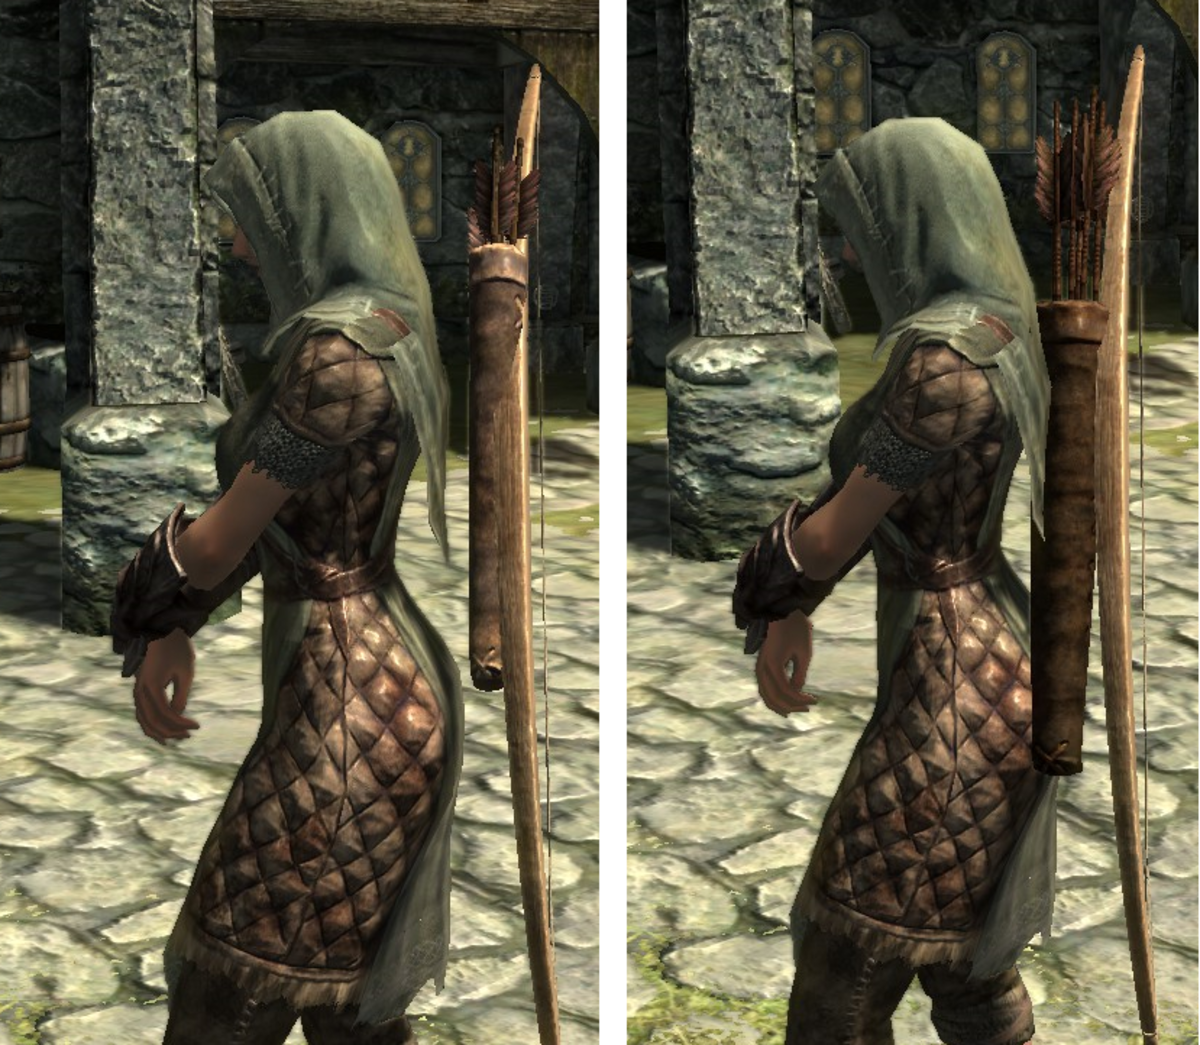 Closer Quivers and Longer Arrows by EvilDeadAsh34 fixes a bug so that quivers sit closer to the player character. Picture courtesy of Skyrim Nexus, Bethesda and Zenimax.